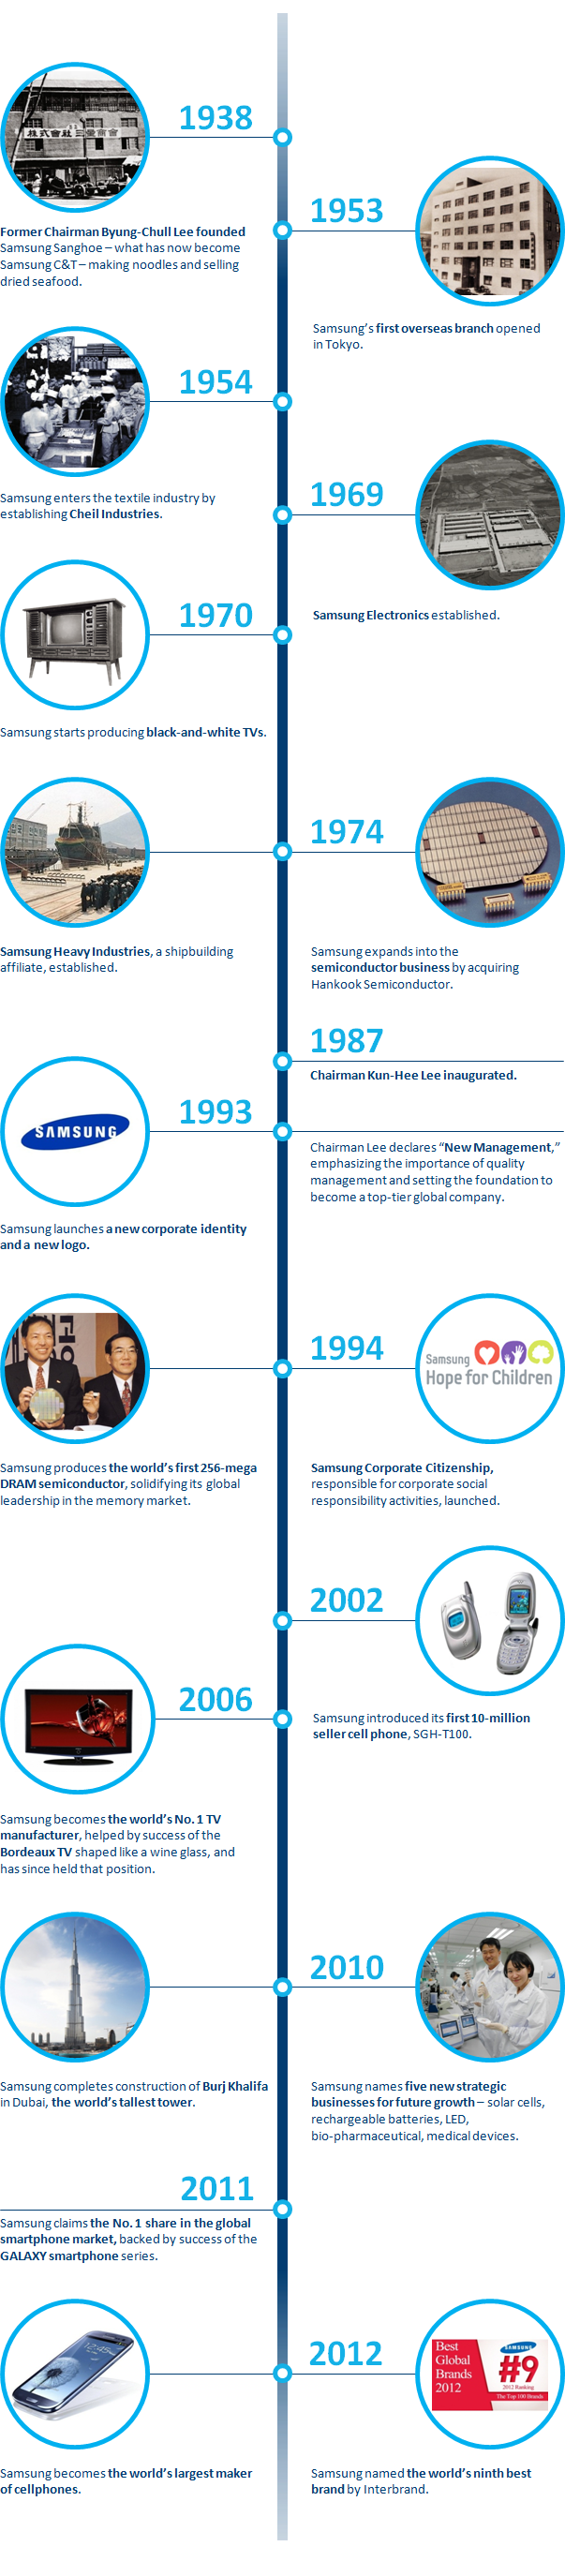 samsung-75years-infographic